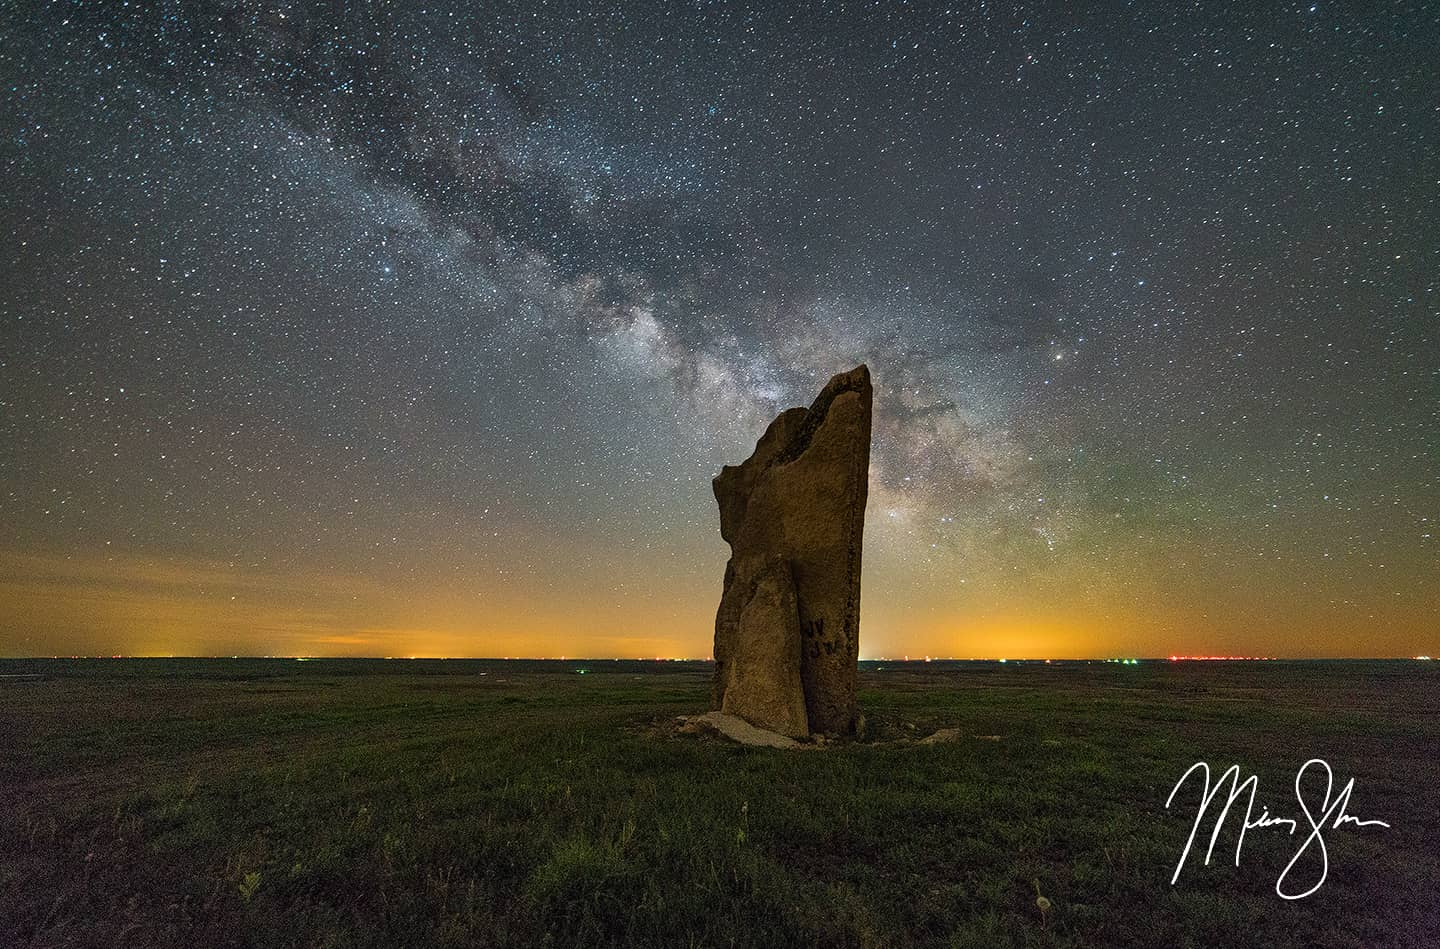 Open edition fine art print of Teter Rock Milky Way from Mickey Shannon Photography. Location: Teter Rock, Cassoday, Kansas